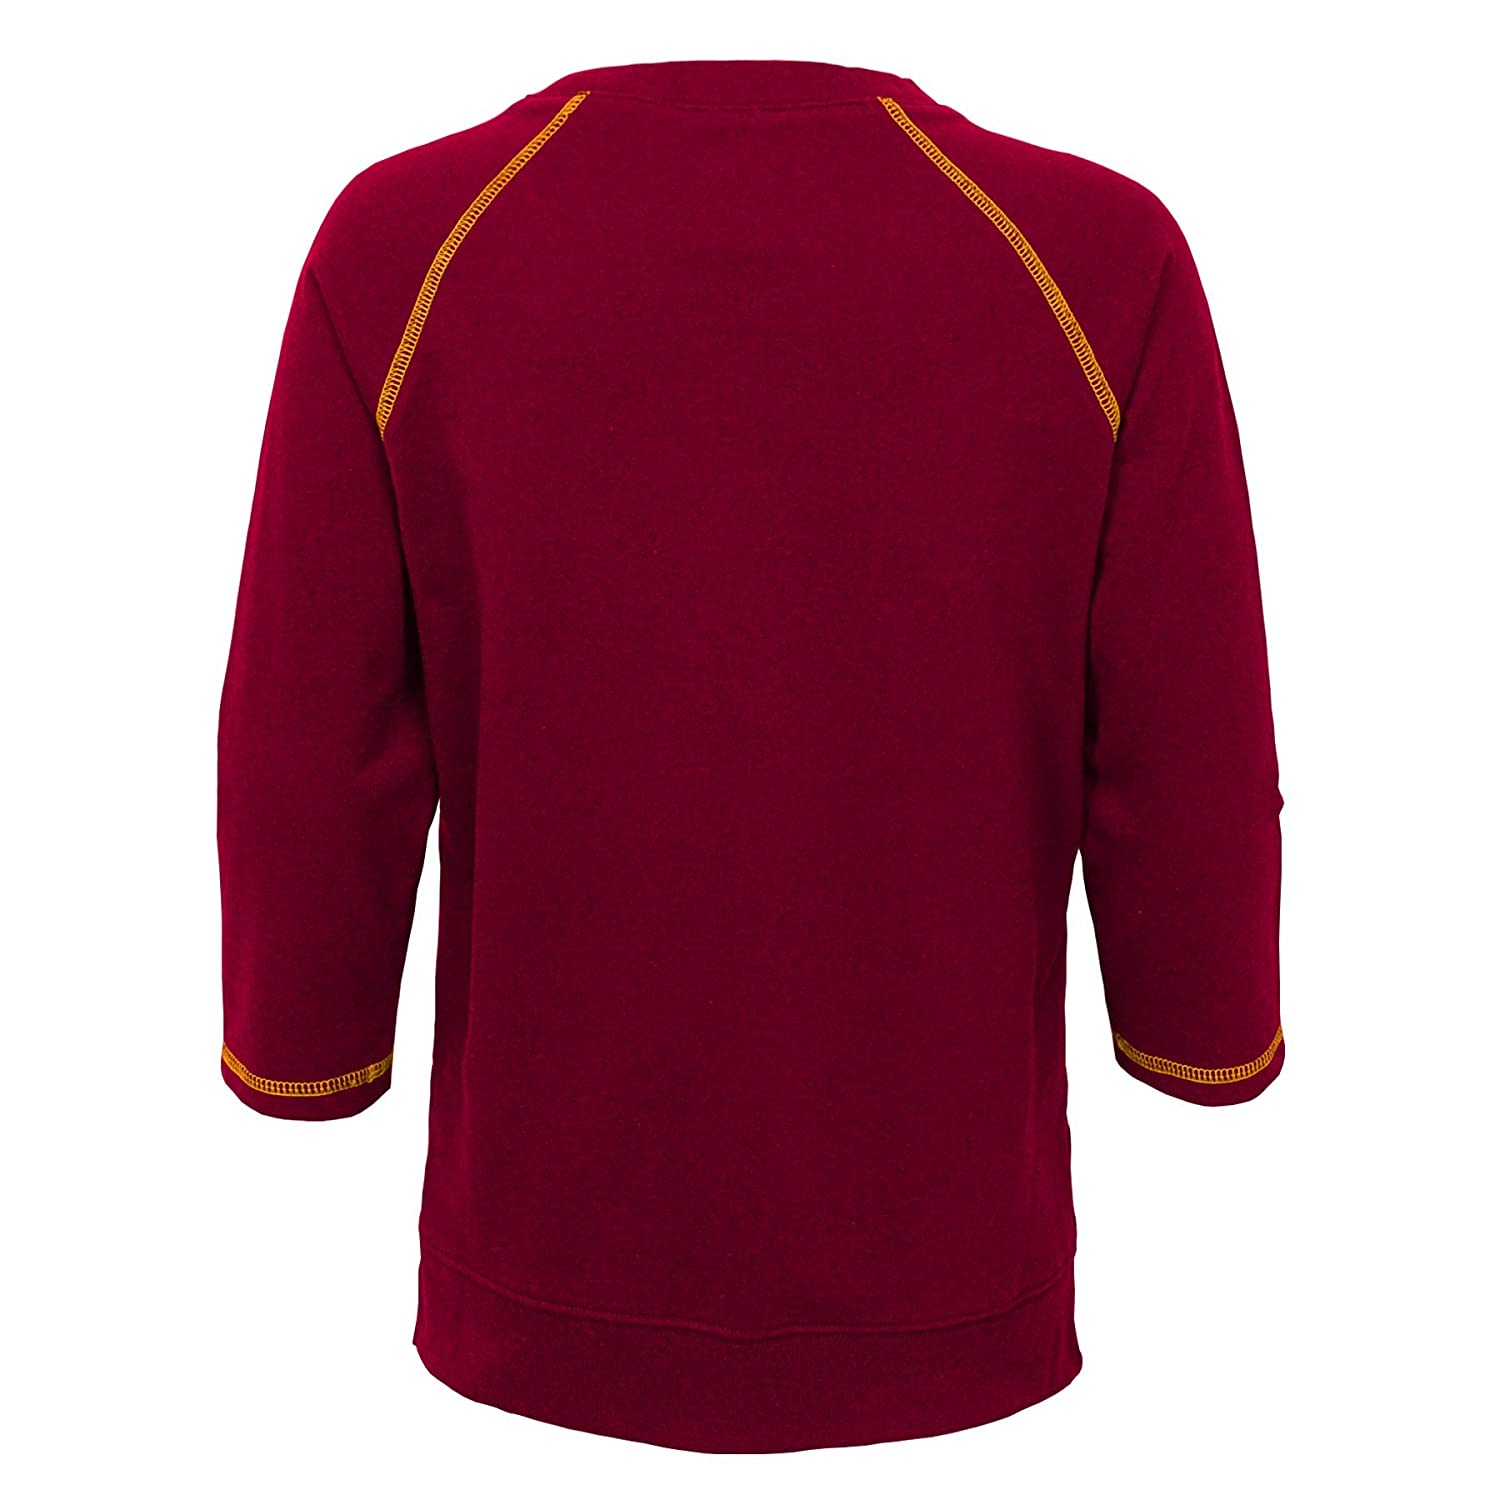 14 Youth Large NFL Washington Redskins Youth Boys Overthrow Pullover Top Burgundy